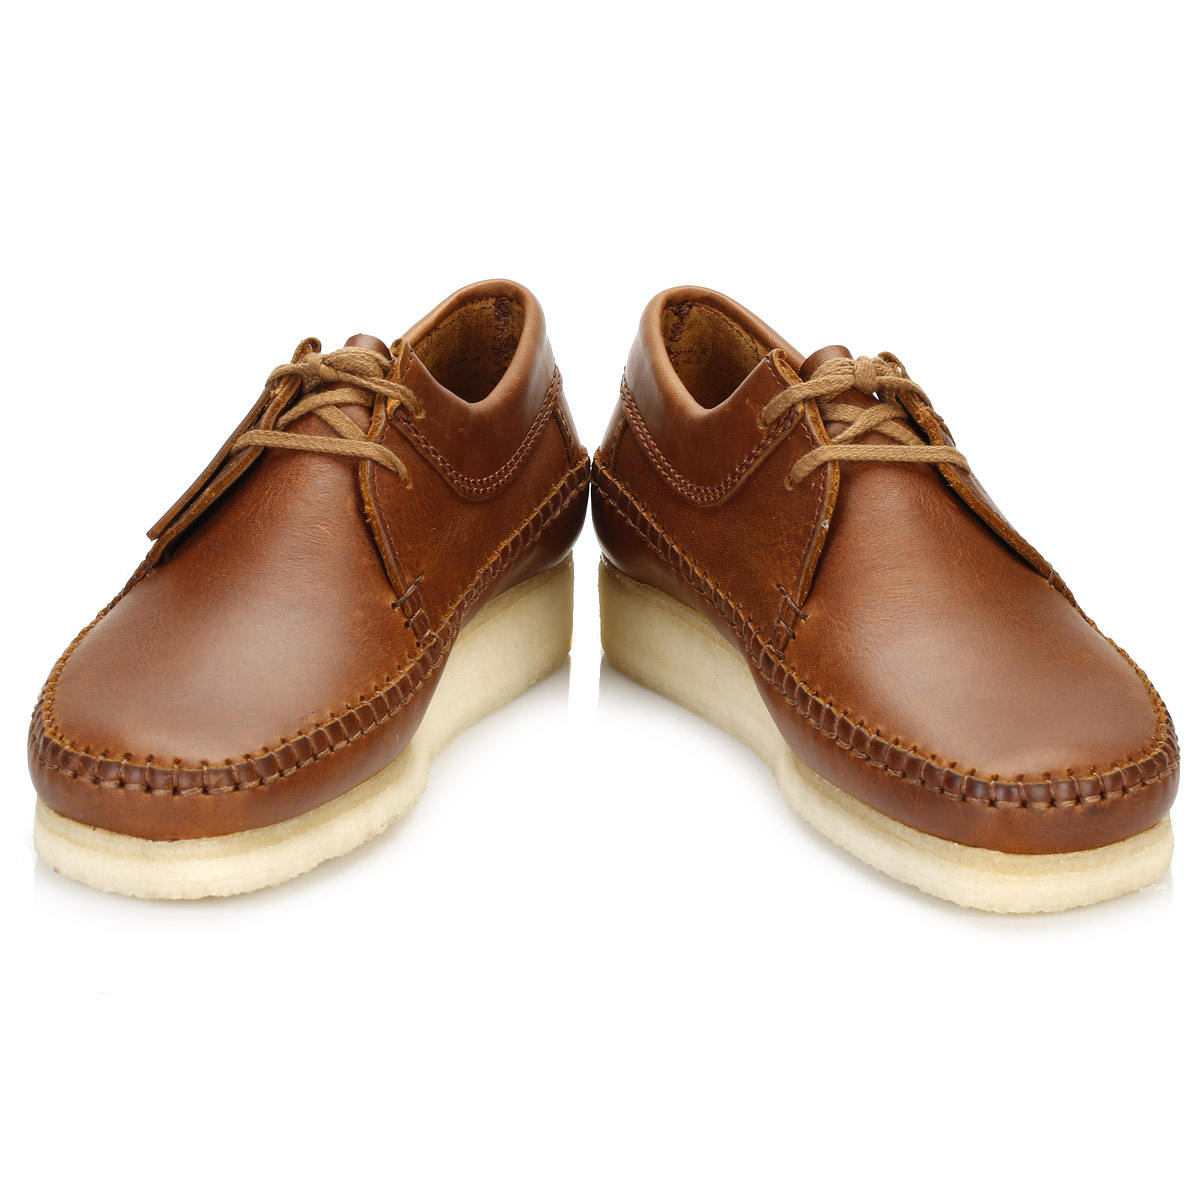 Clarks Boys Leather Shoes